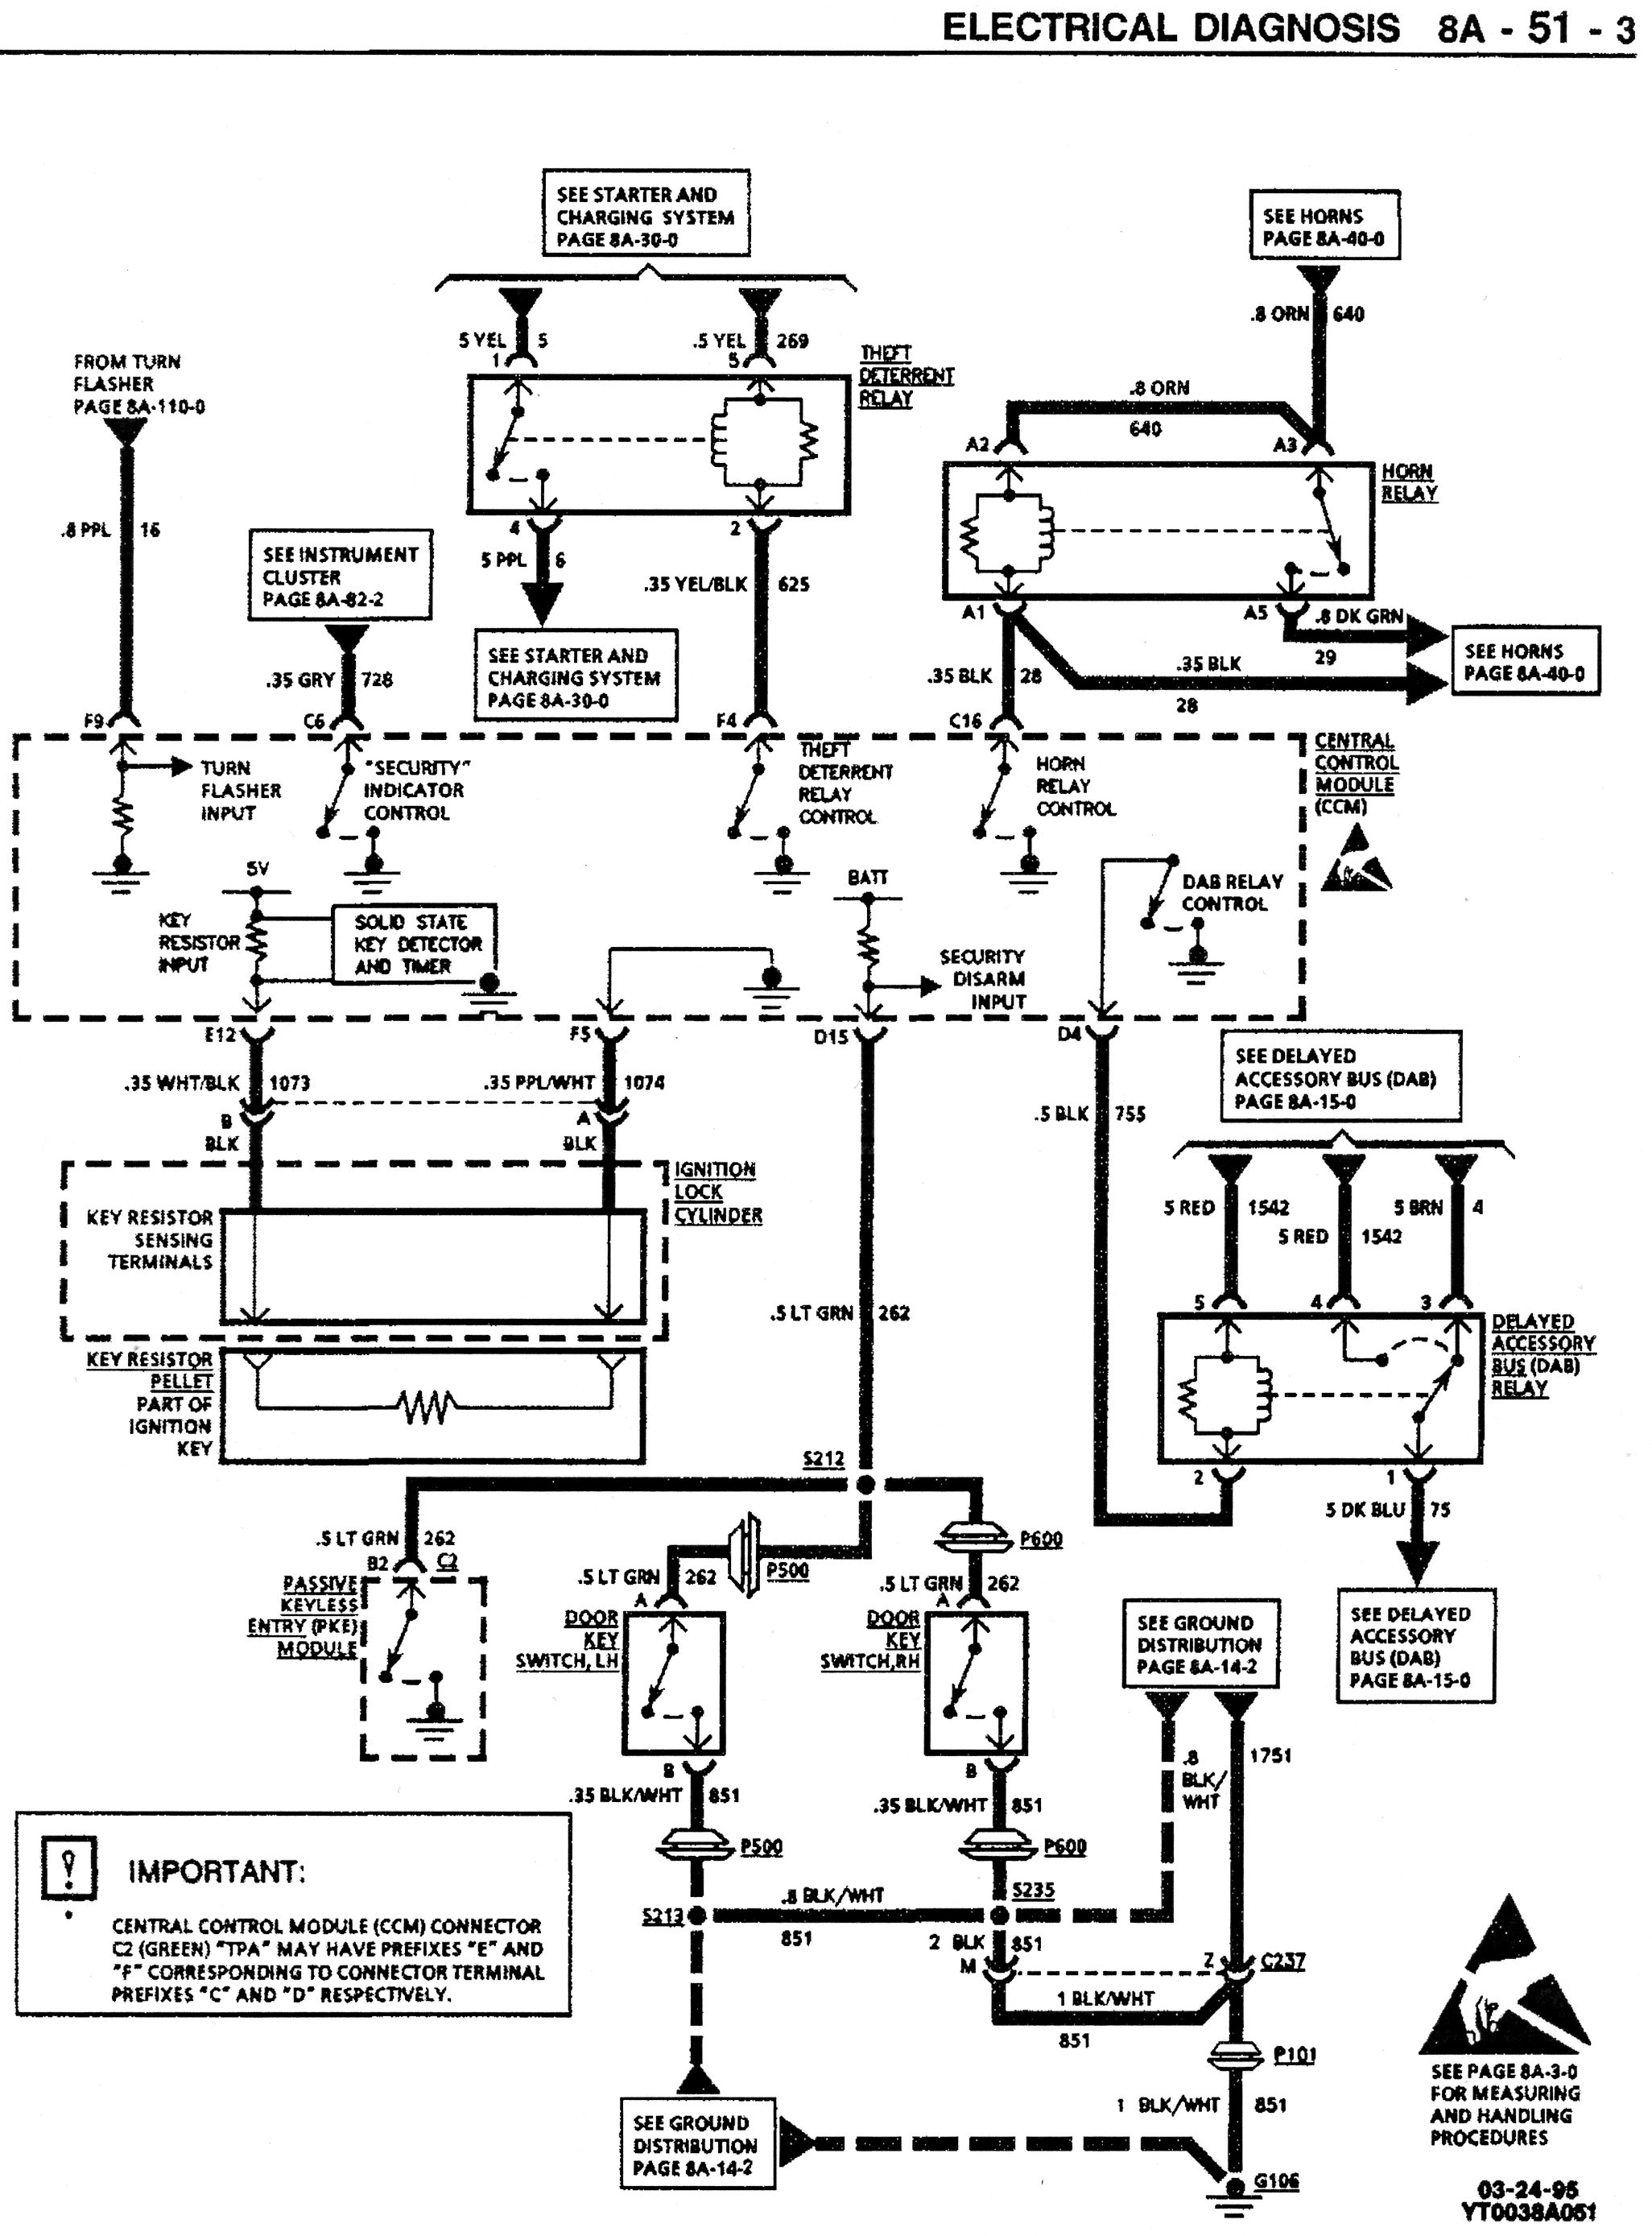 1977 Corvette Radio Wiring Diagram - Wiring Diagram